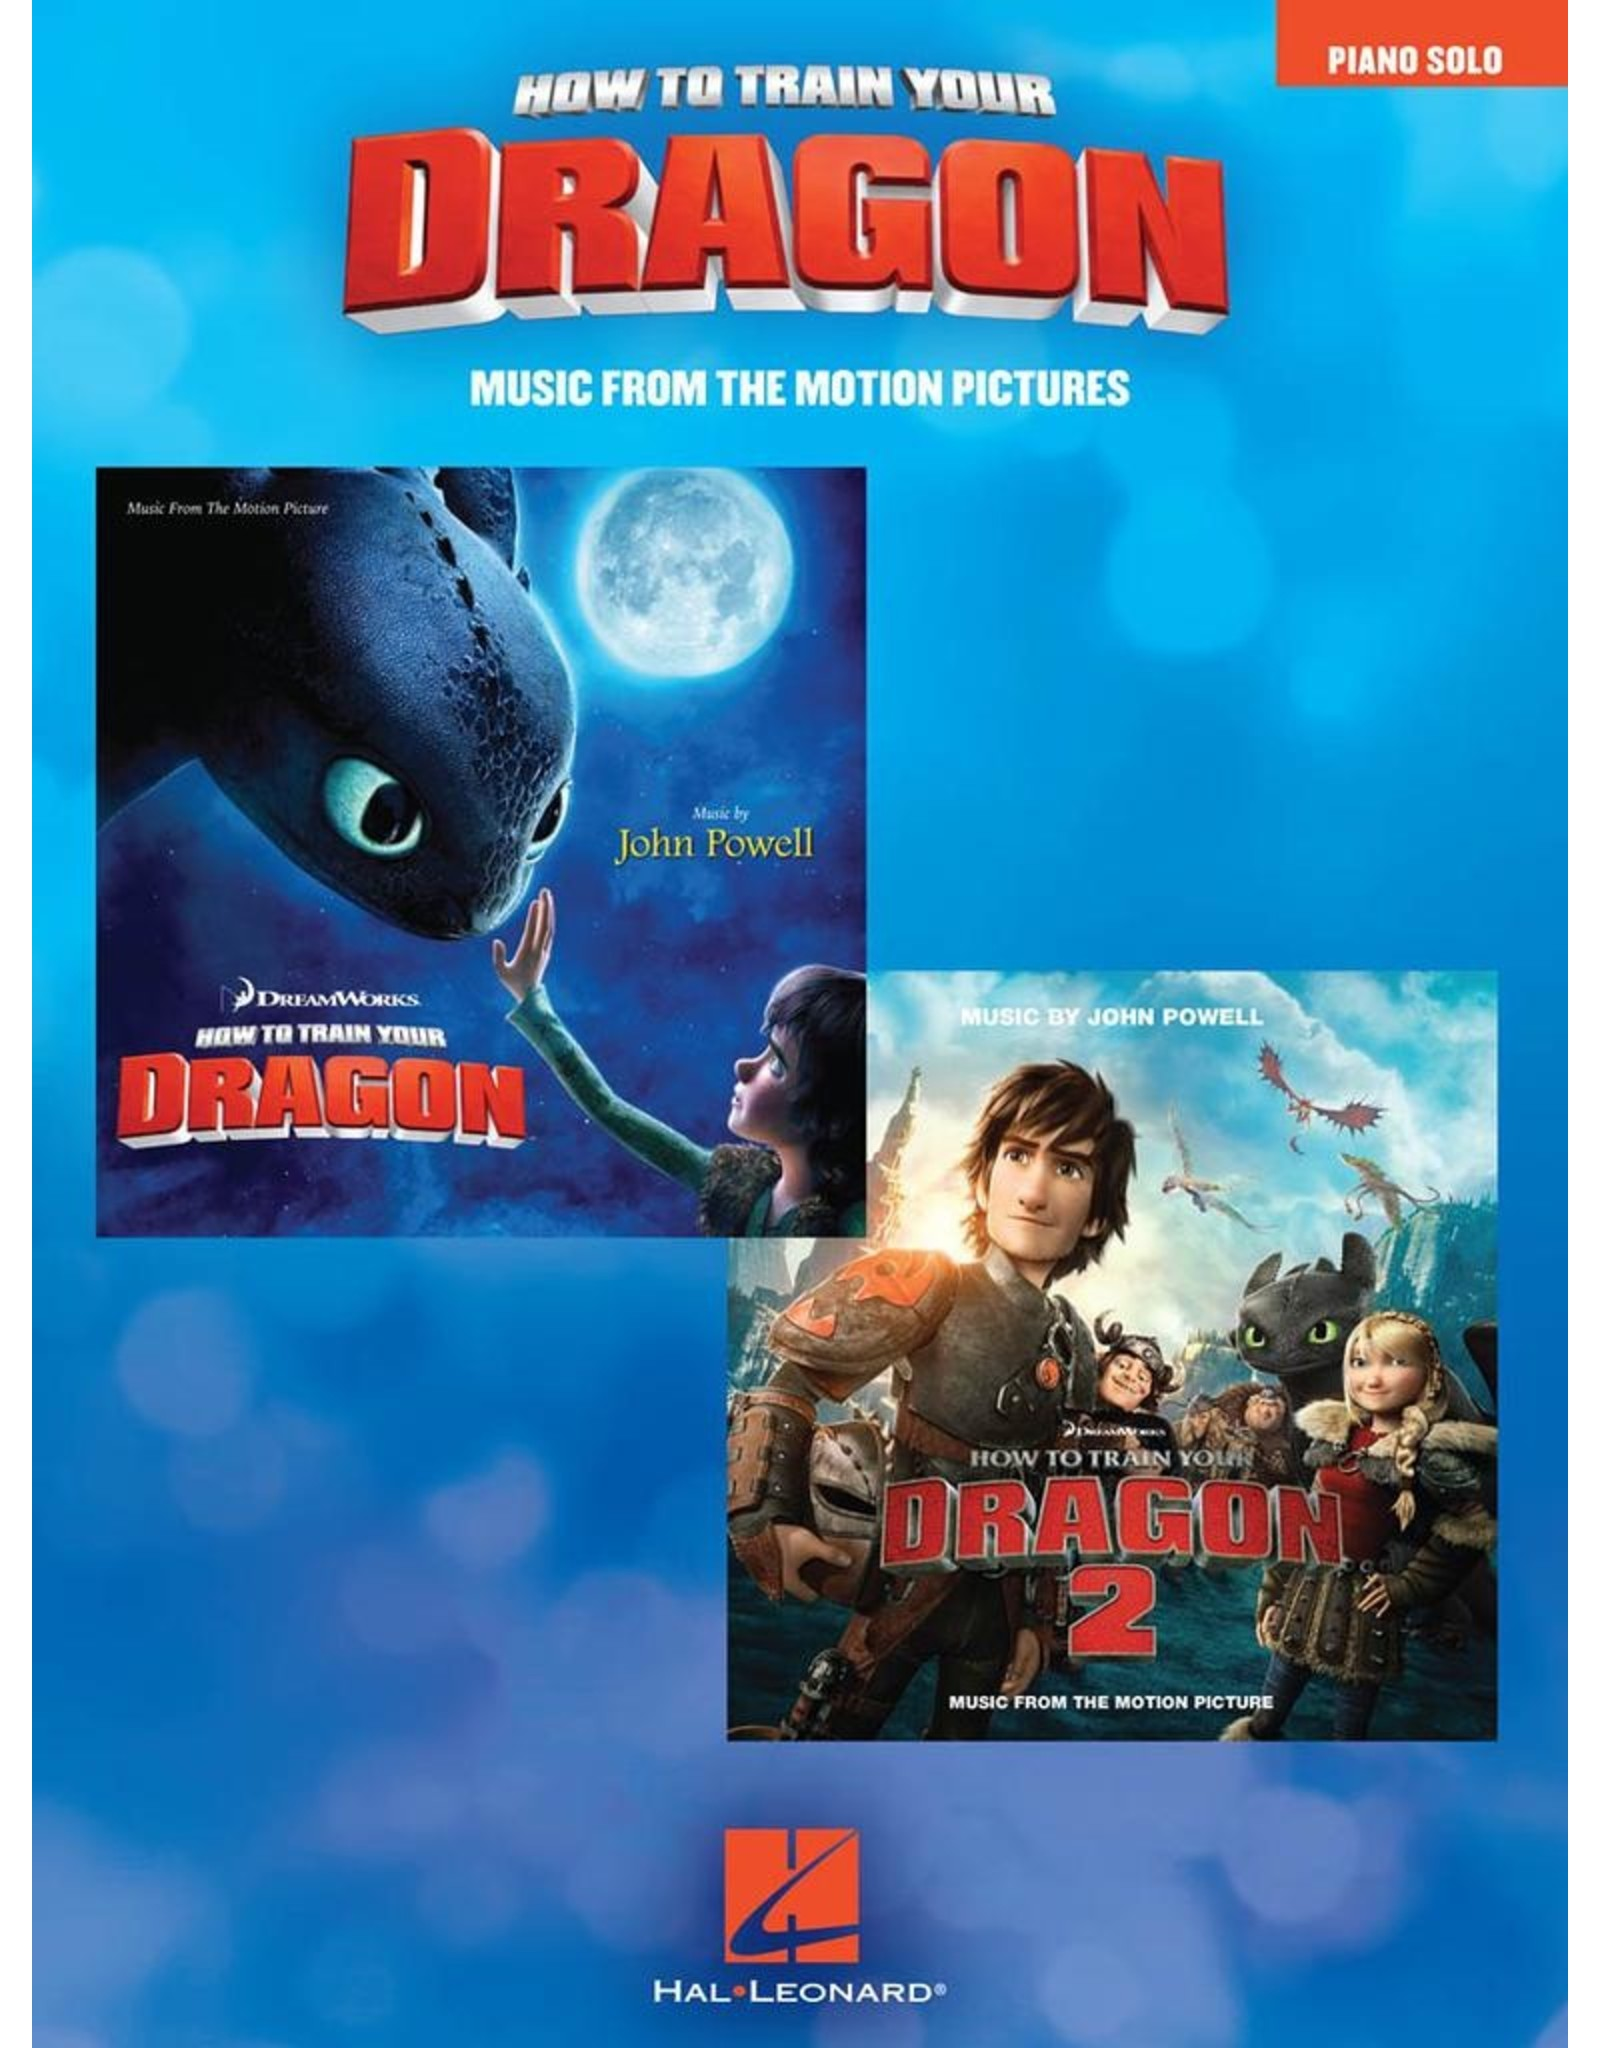 Hal Leonard How to Train Your Dragon - Music from the Motion Pictures (1&2) by John Powell